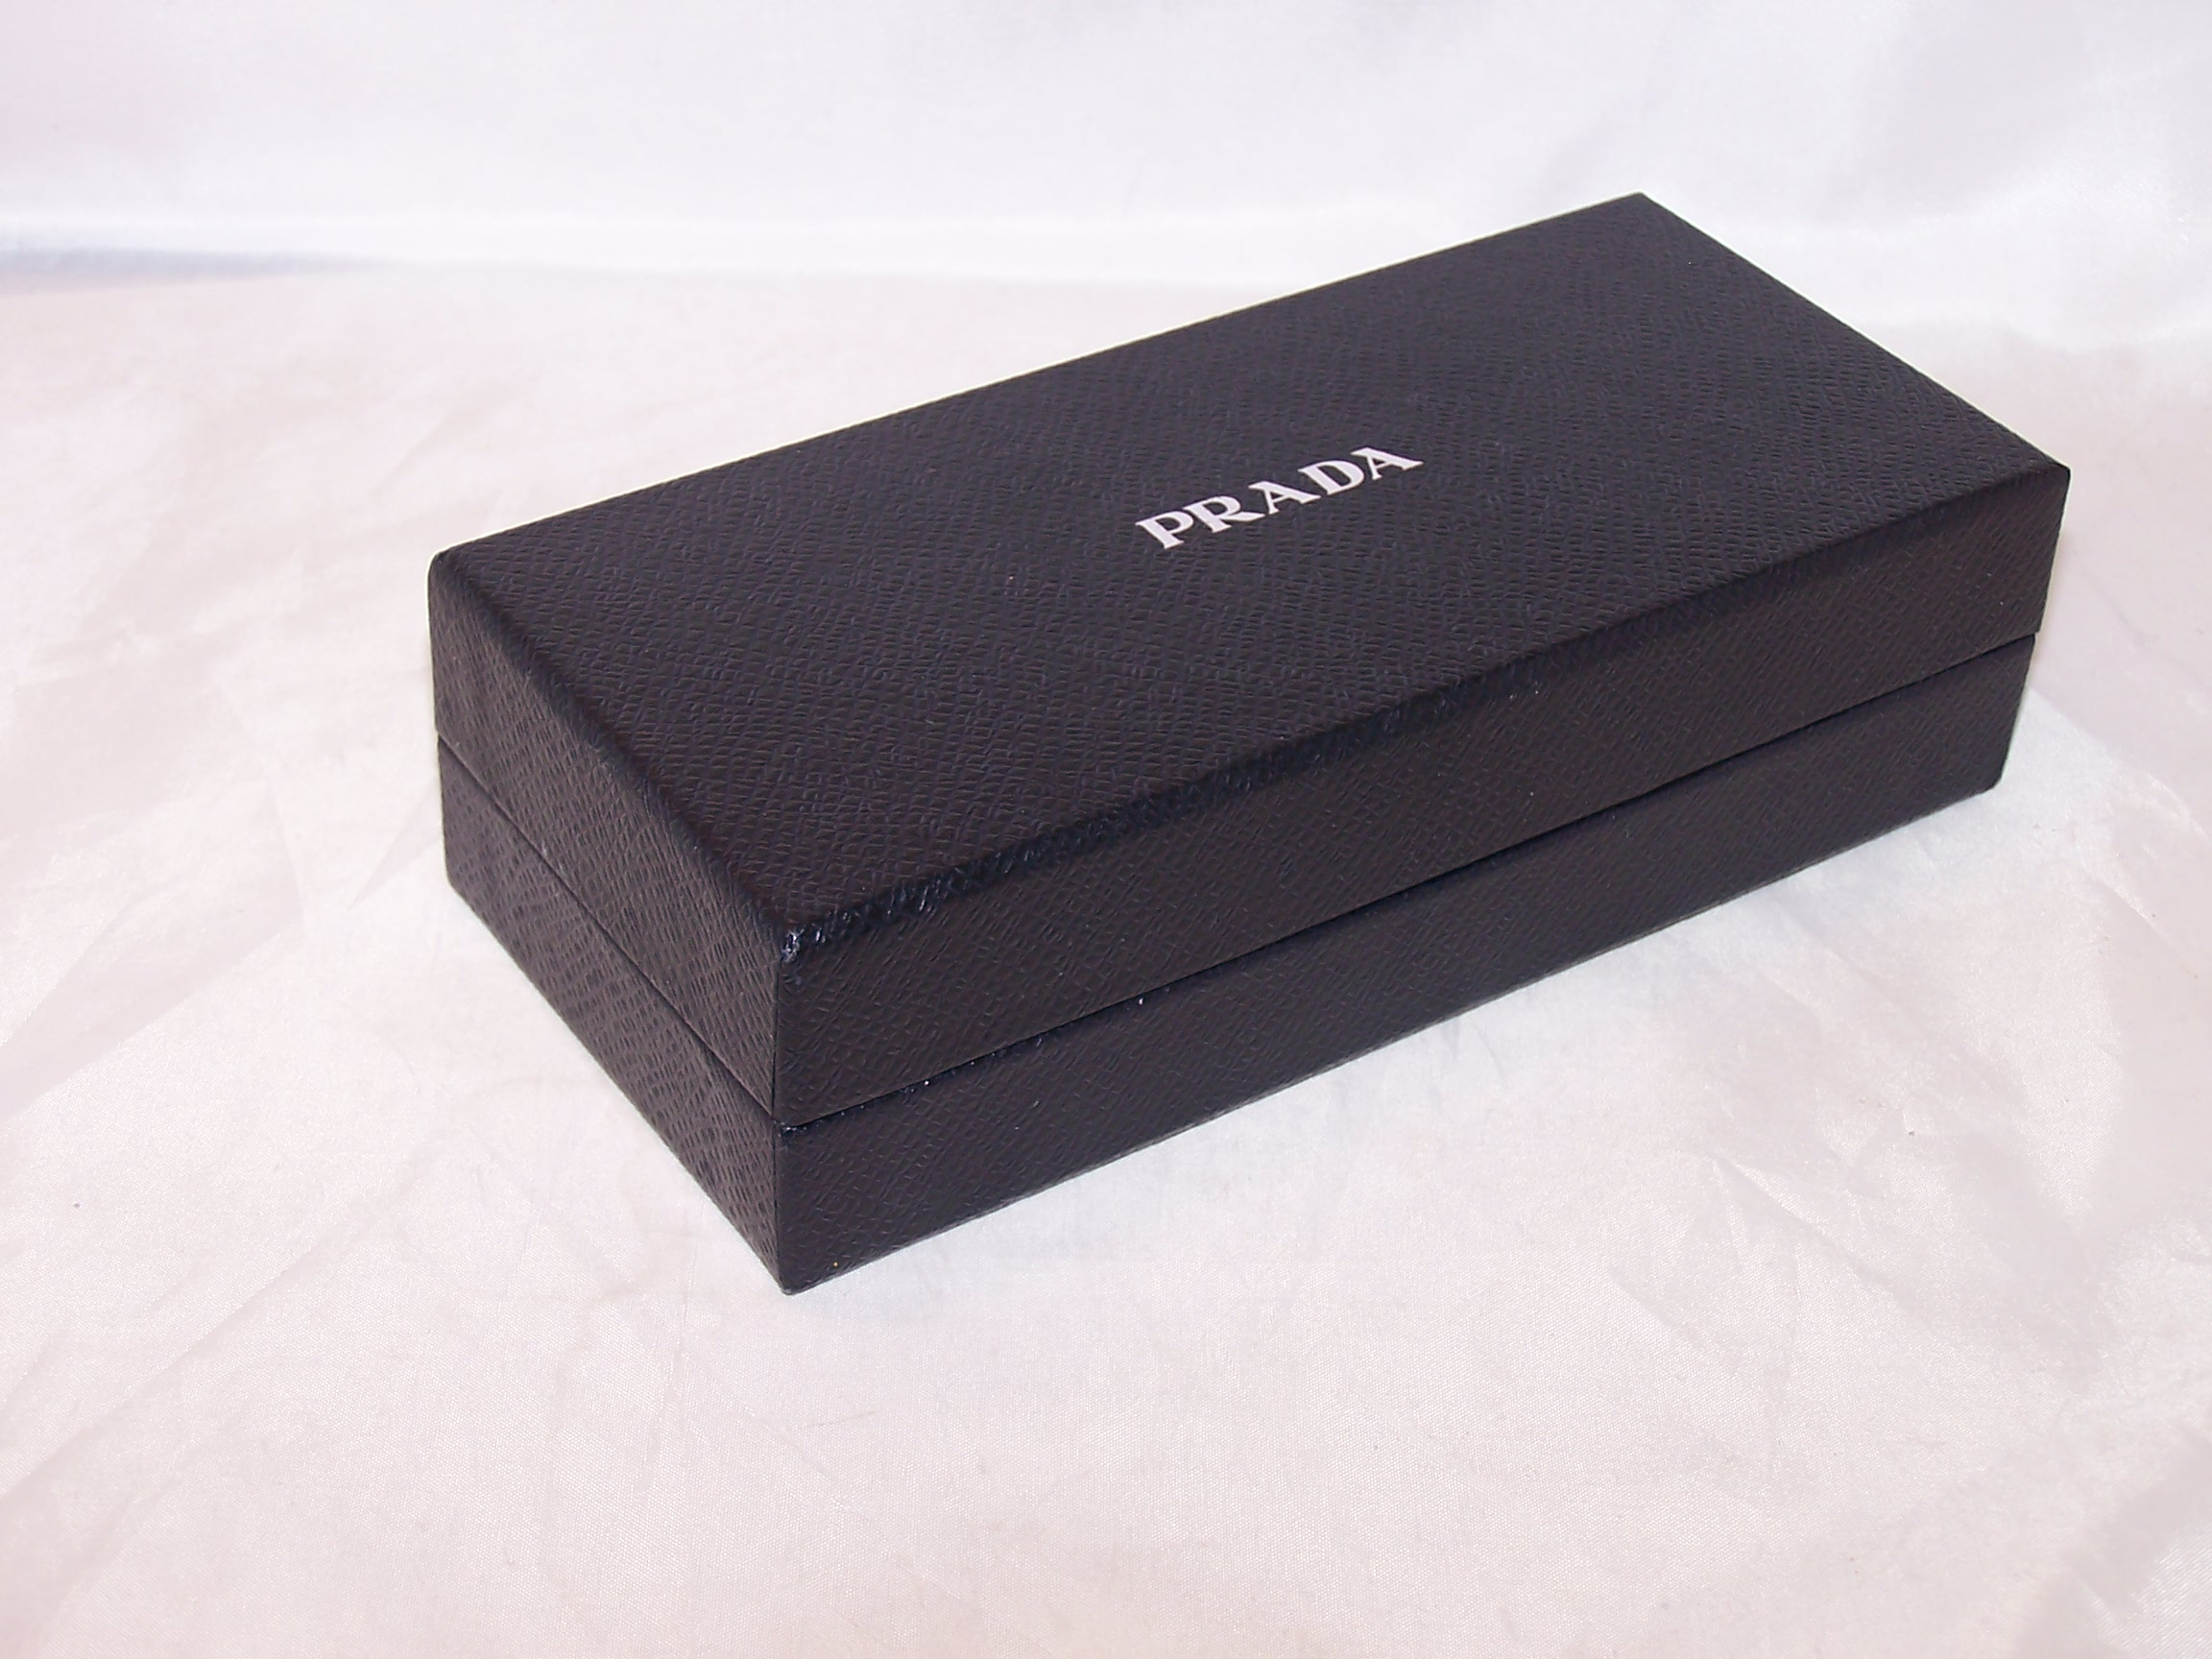 Image 1 of Prada Box, Black w Silver, Rectangular